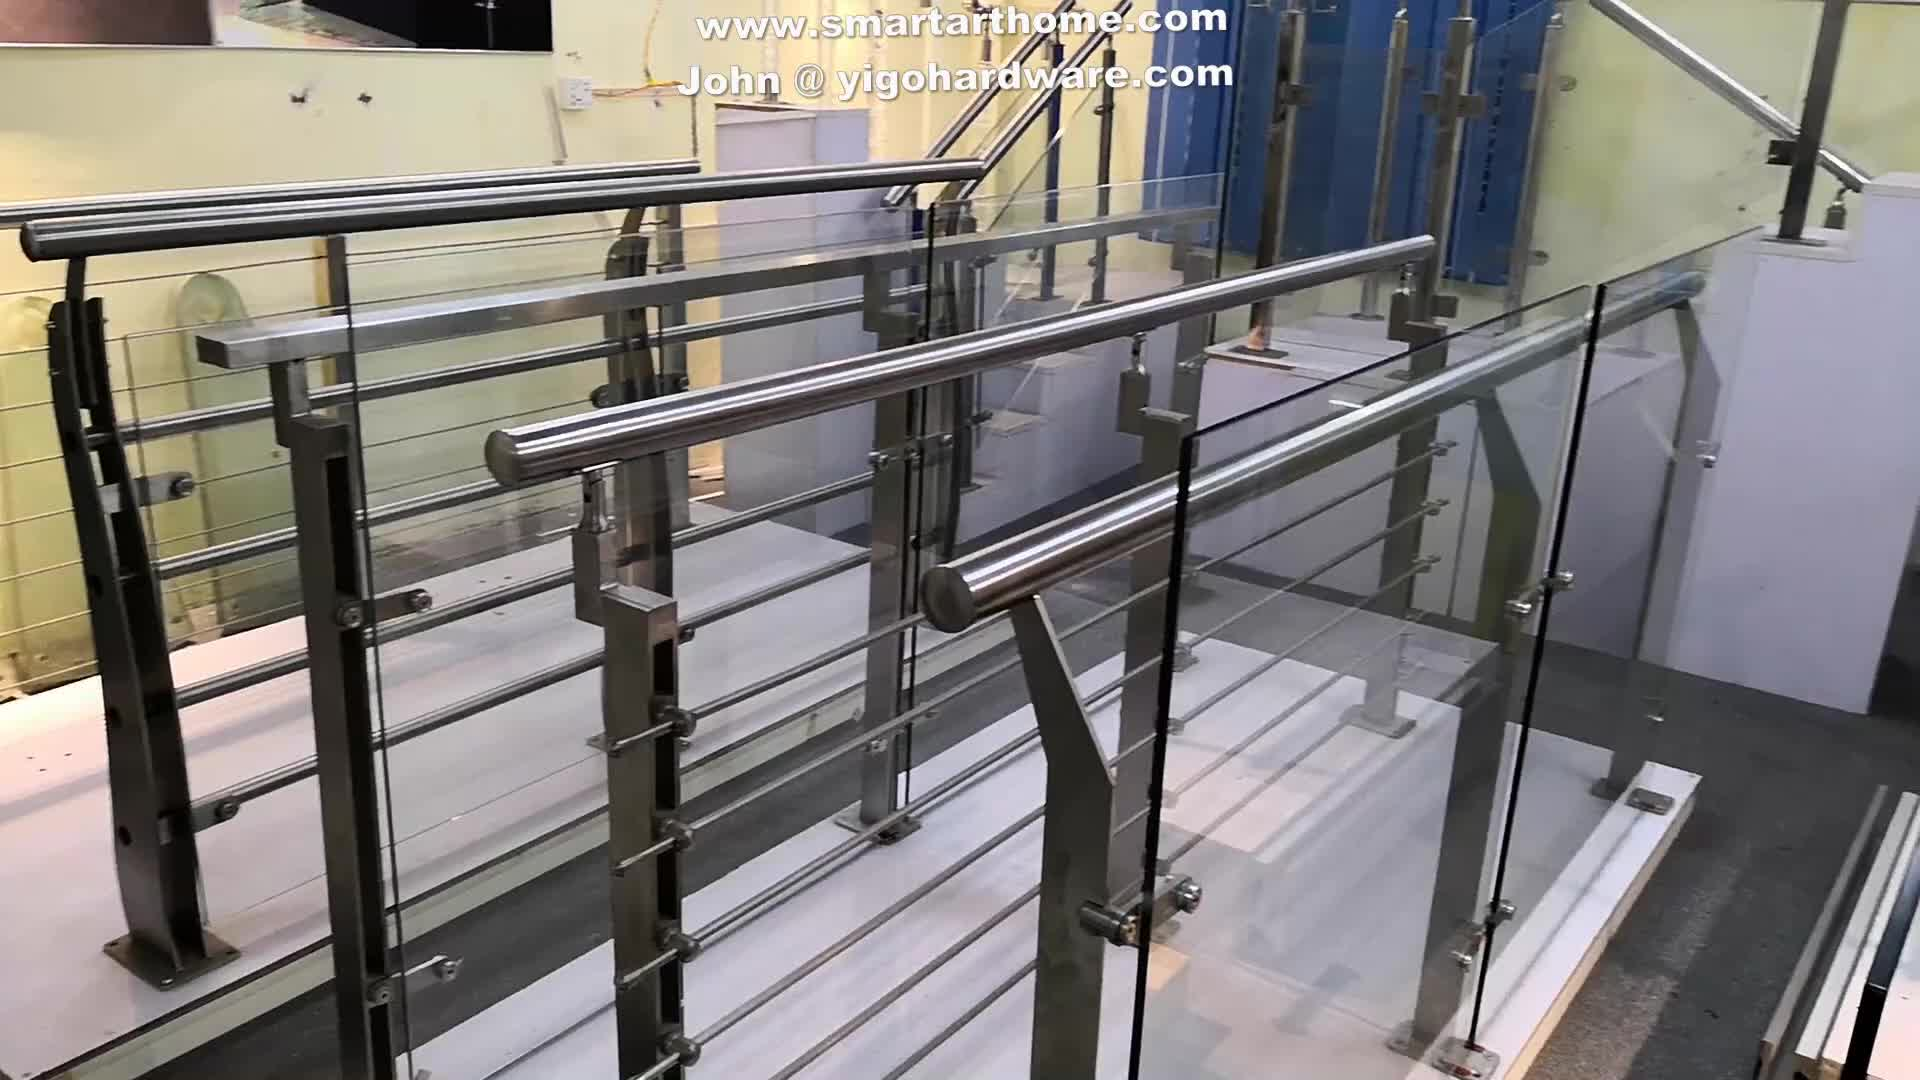 Customized glass balcony railing with glass baluster low price